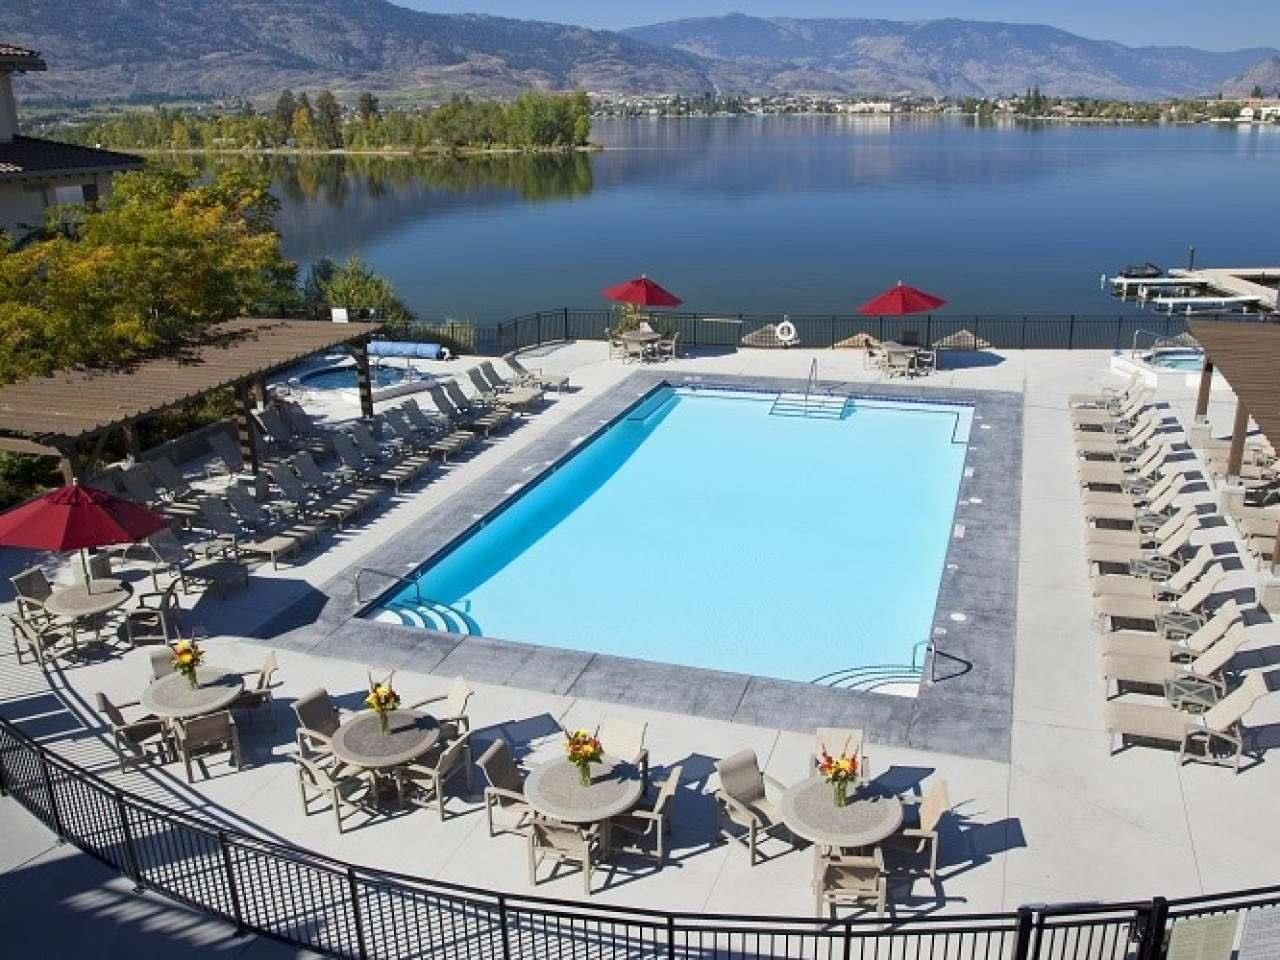 Main Photo: #244 4200 LAKESHORE Drive, in Osoyoos: House for sale : MLS®# 185167